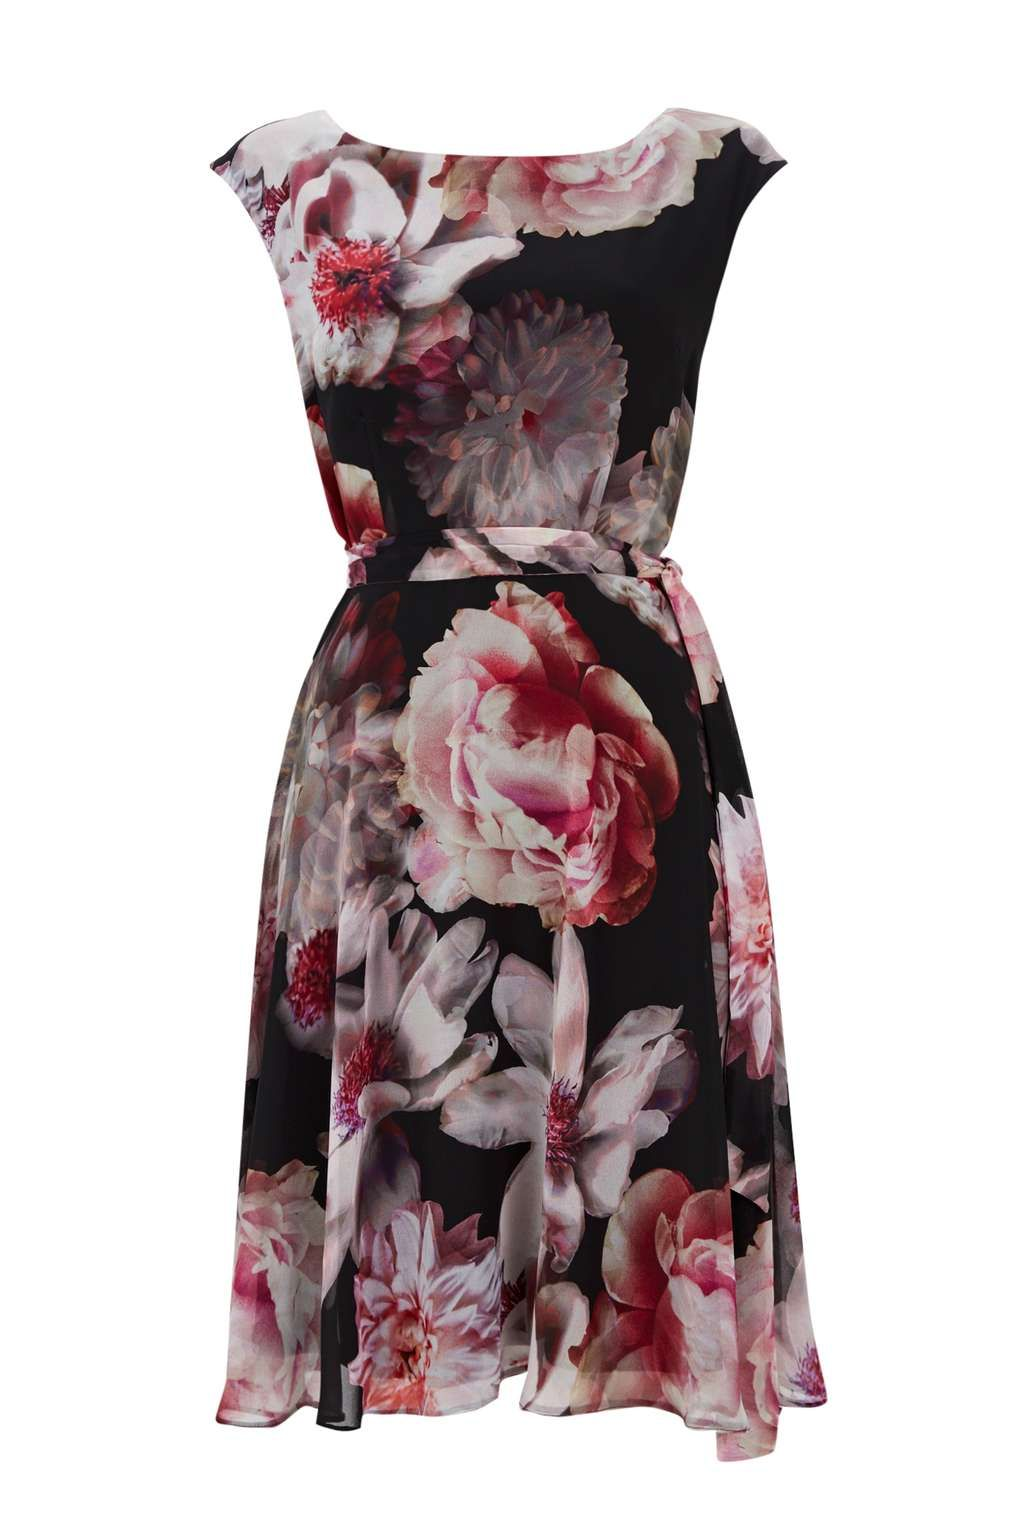 Black floral fit and flare dress fit and flare dress